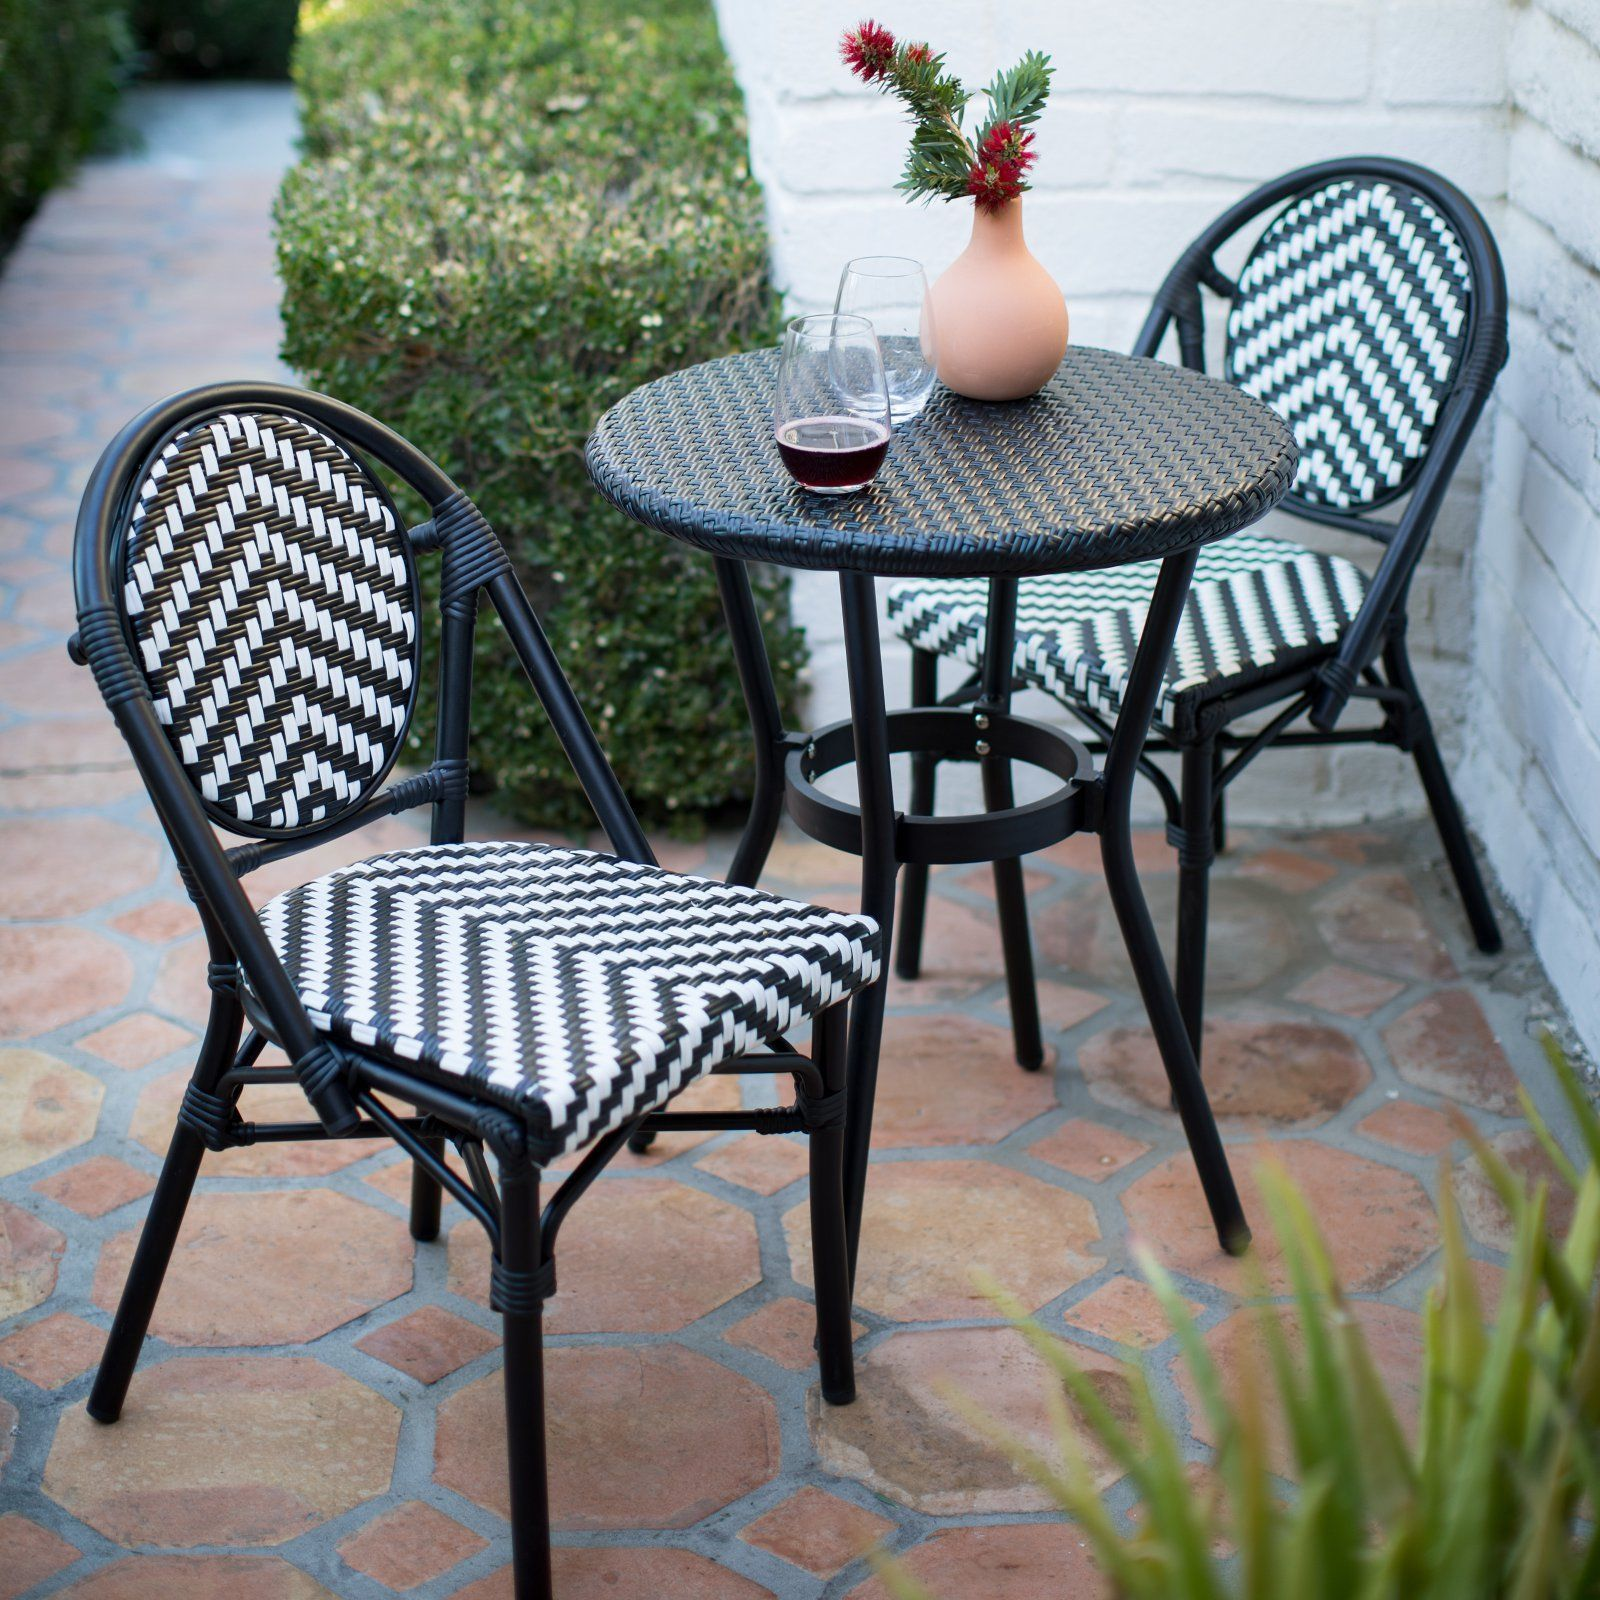 white chairs sets outdoor furniture for small spaces | Black & White 3 pc Outdoor Resin Wicker Small Space Patio ...